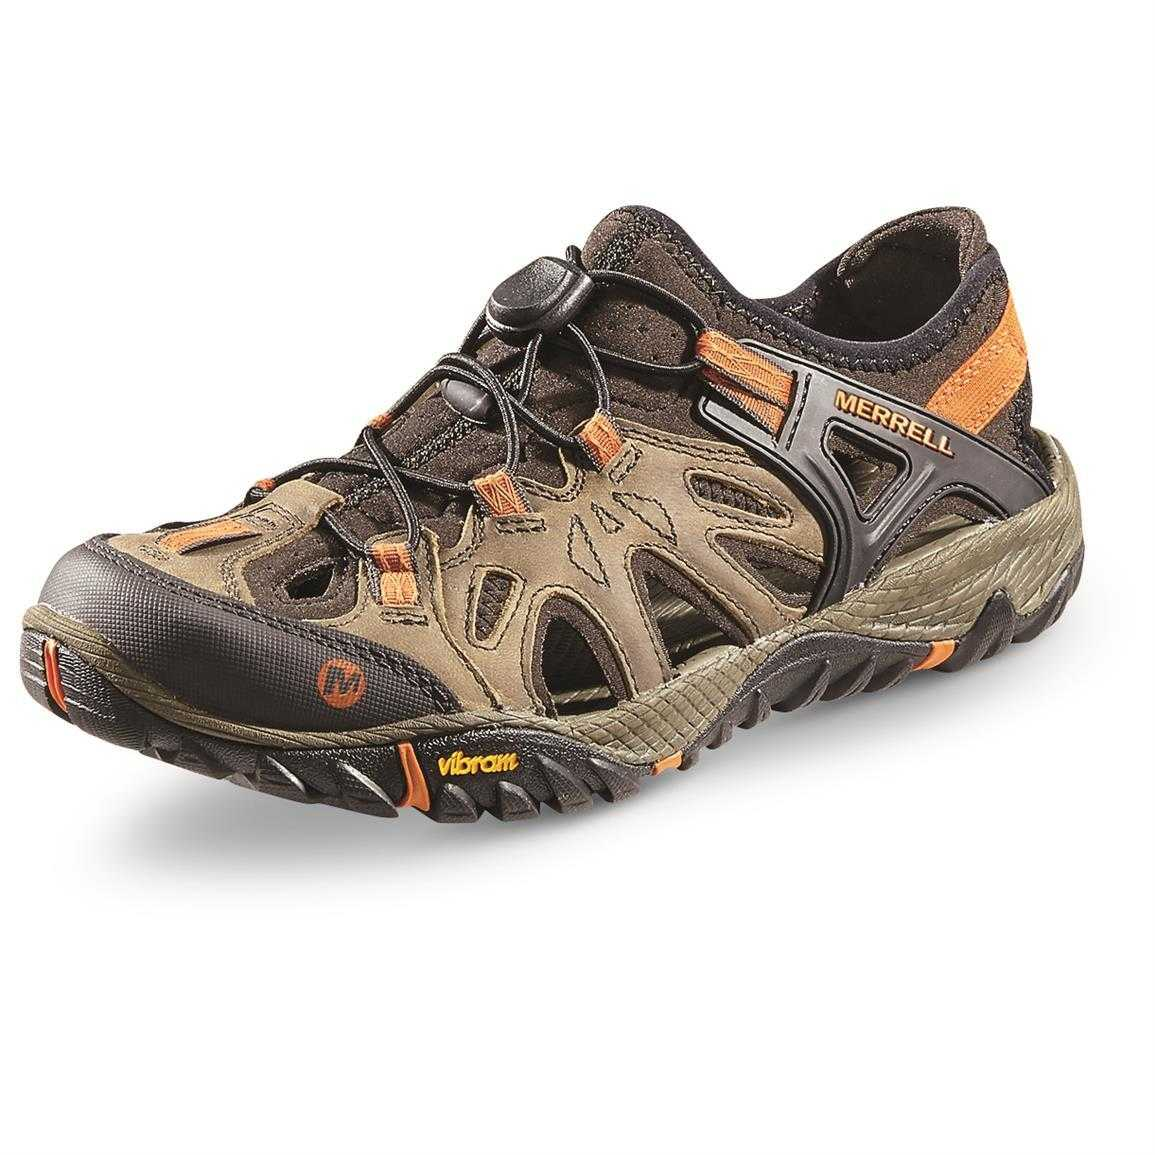 Merrell Men's All Out Blaze Sieve Water Shoe: Kayak Fishing